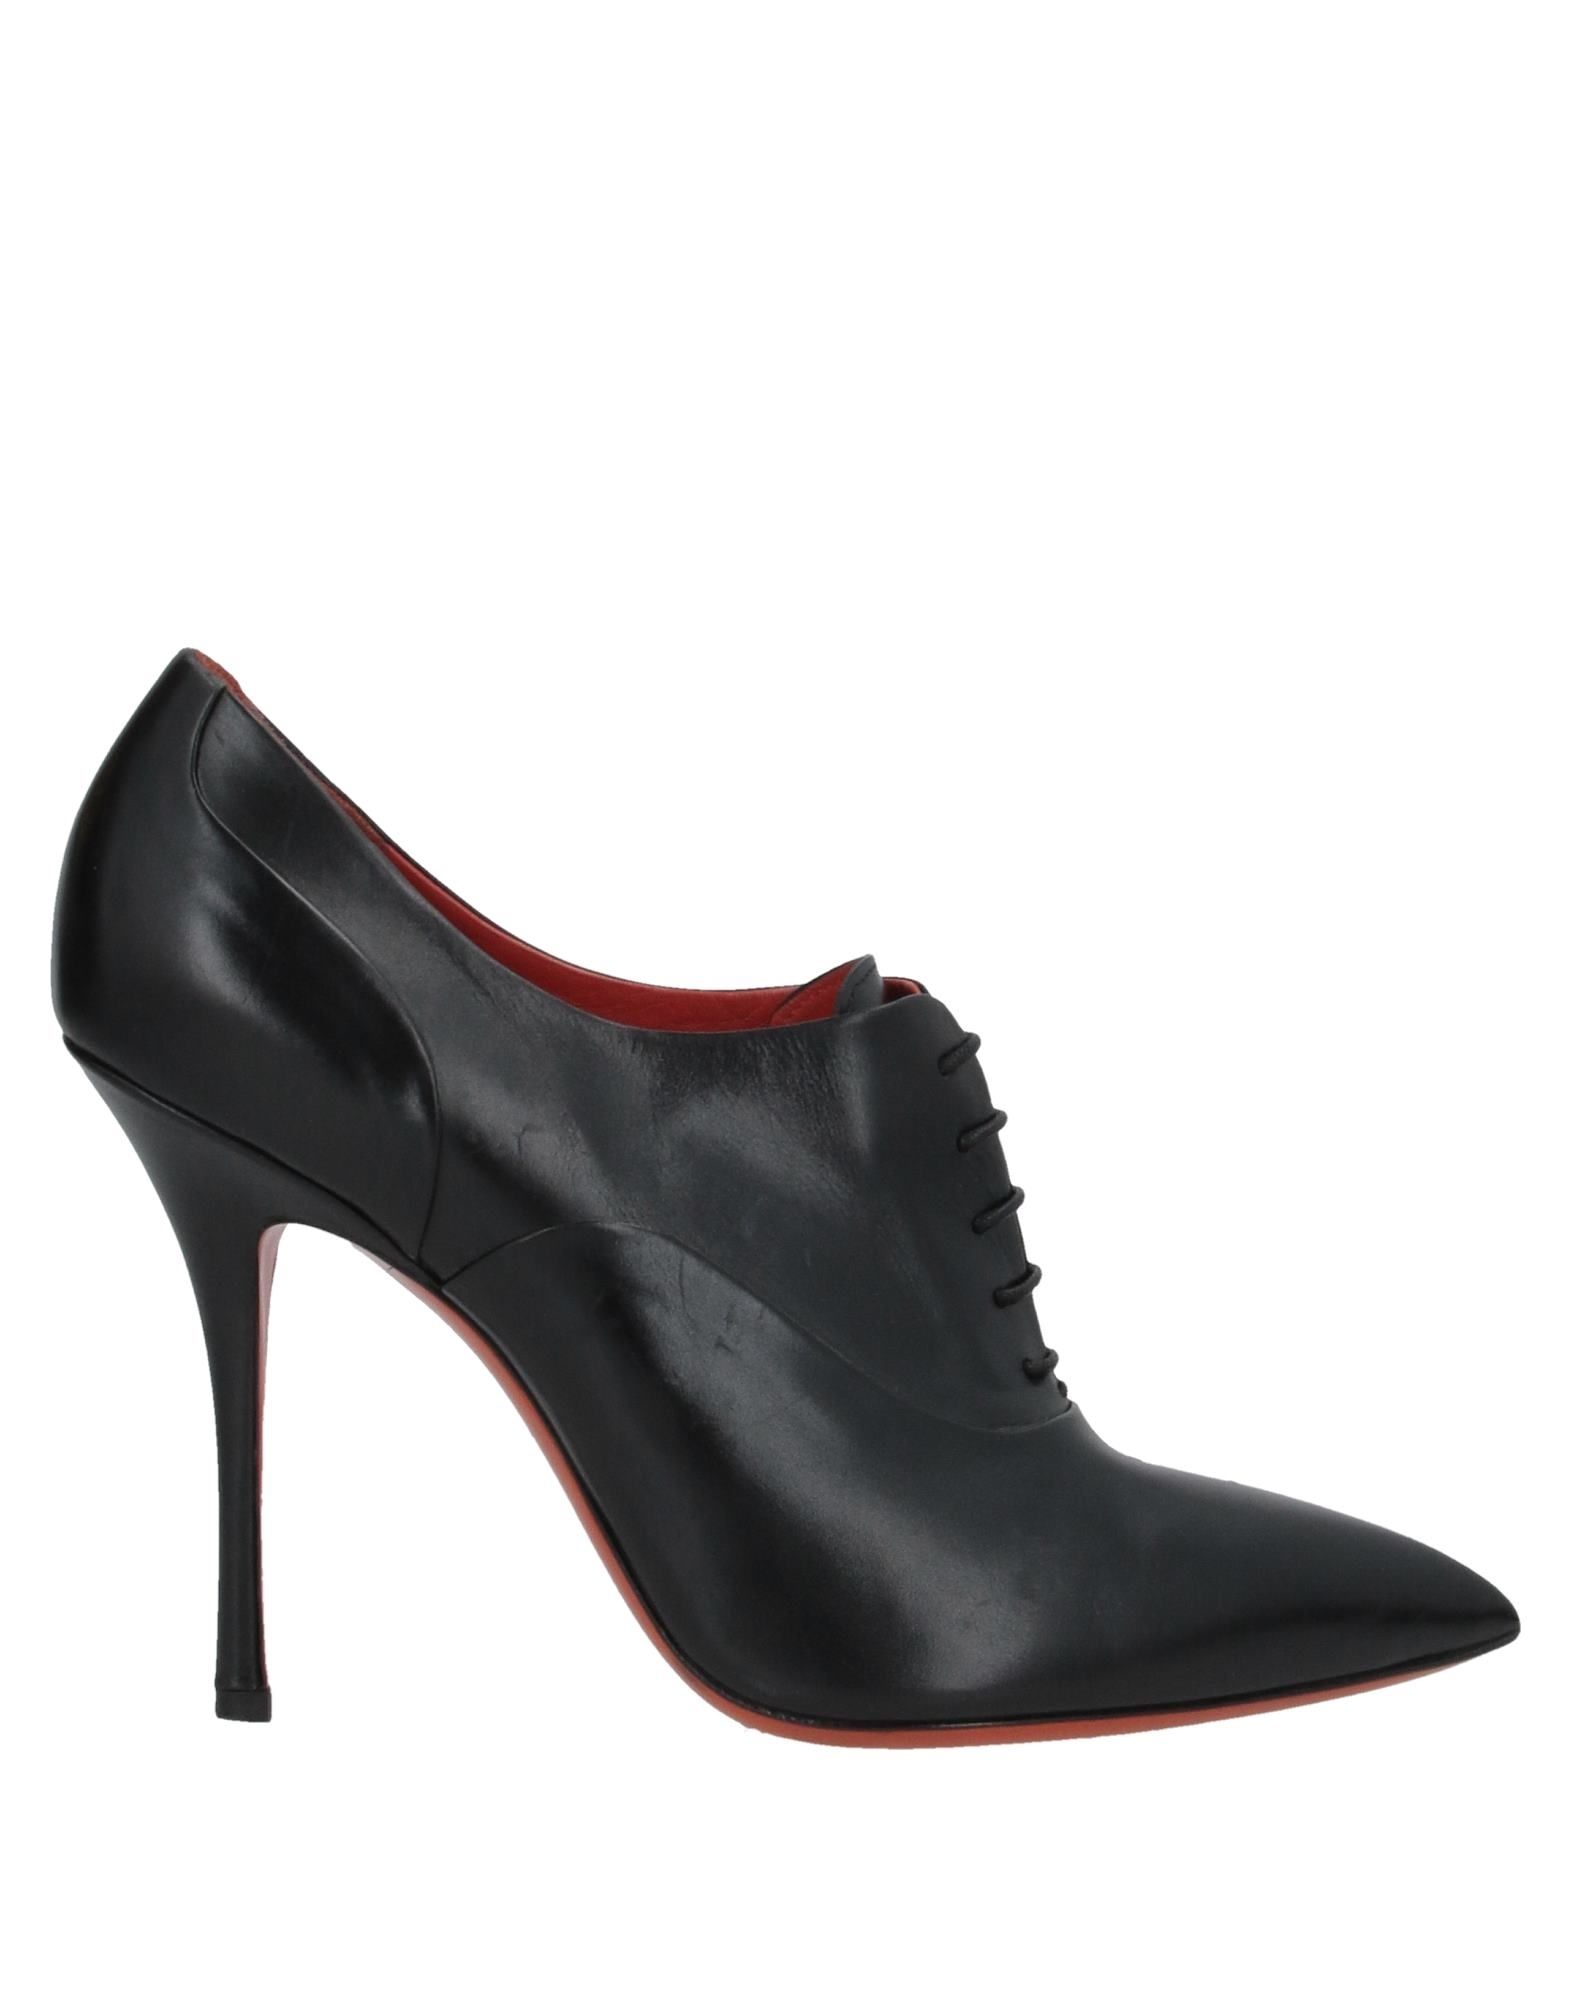 SANTONI Booties. leather, no appliqués, solid color, laces, narrow toeline, spike heel, covered heel, leather lining, leather/rubber sole, contains non-textile parts of animal origin, large sized. Soft Leather